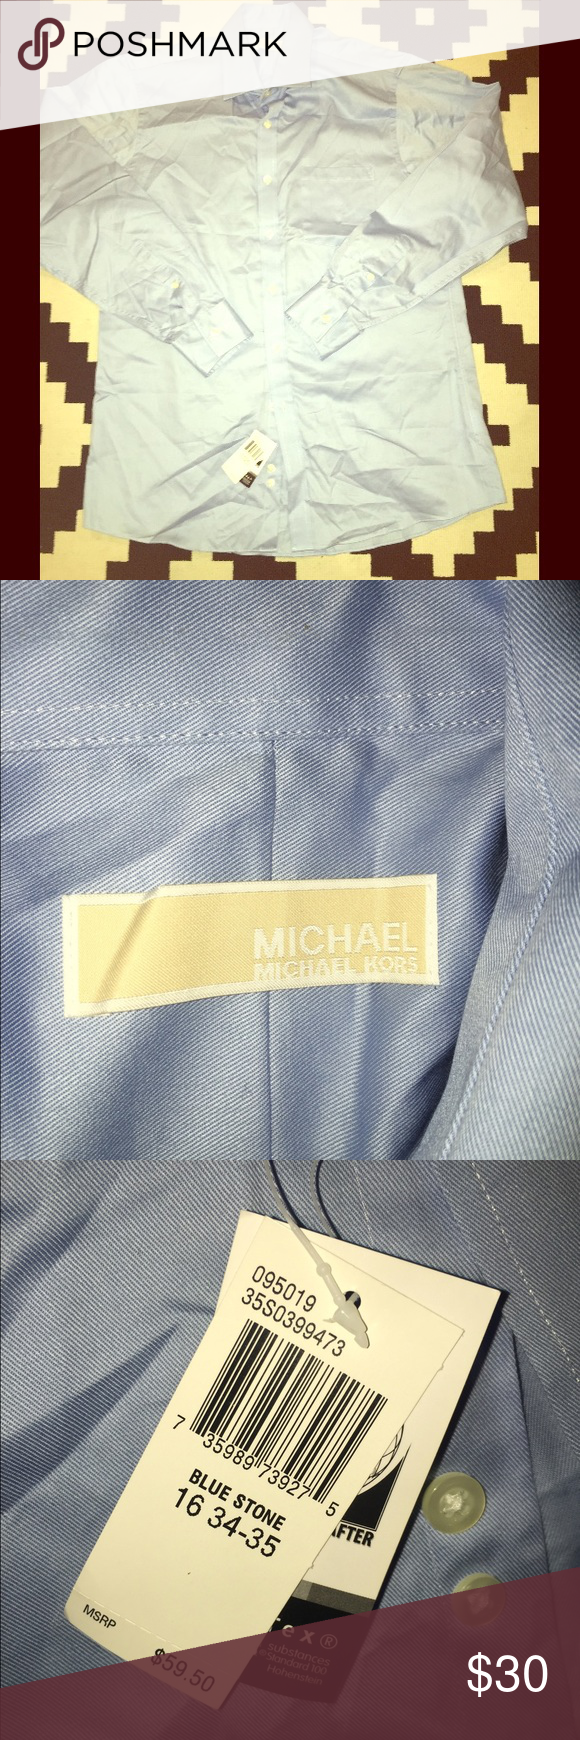 Michael Kors Dress shirt Brand new with tags light blue Michael Kors shirt from MK store. No flaws, just way too big for my boyfriend. Size 34/35 and neck 16 Michael Kors Shirts Dress Shirts